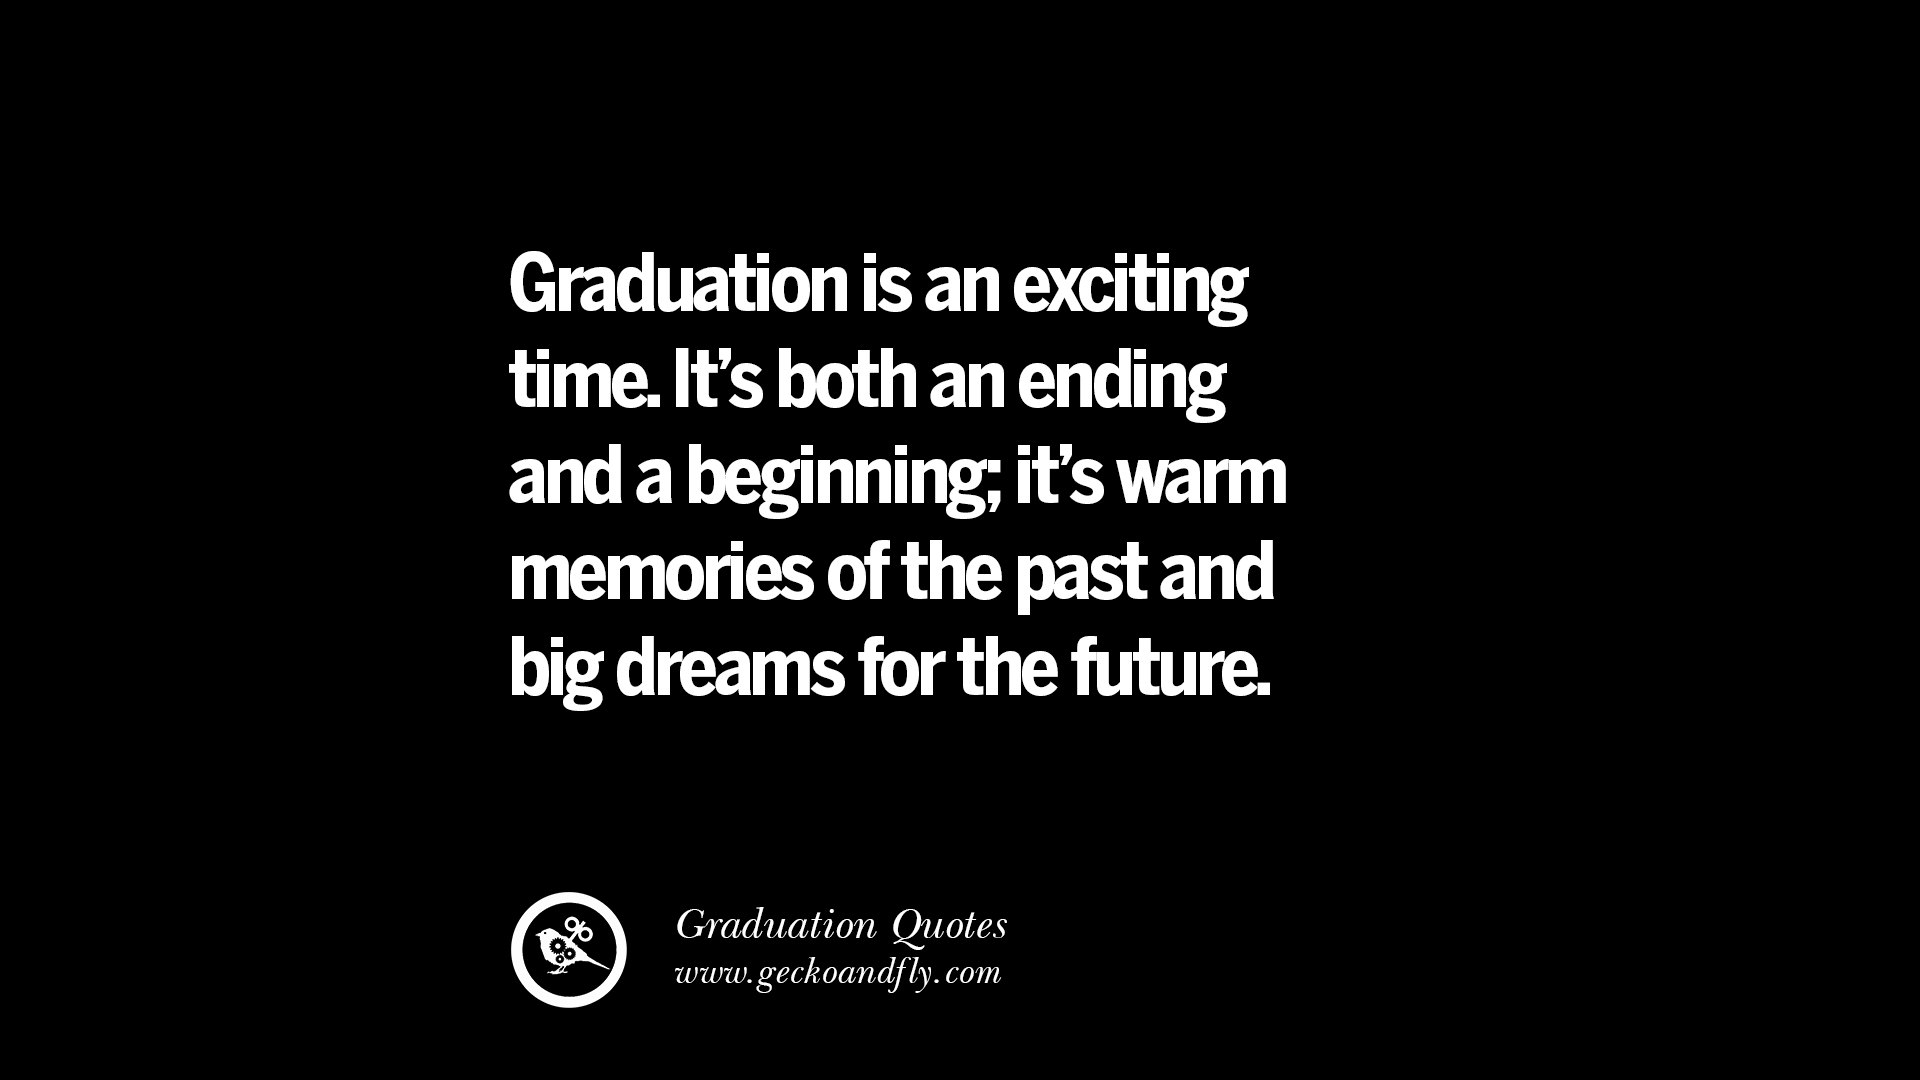 empowering graduation quotes for university college and school